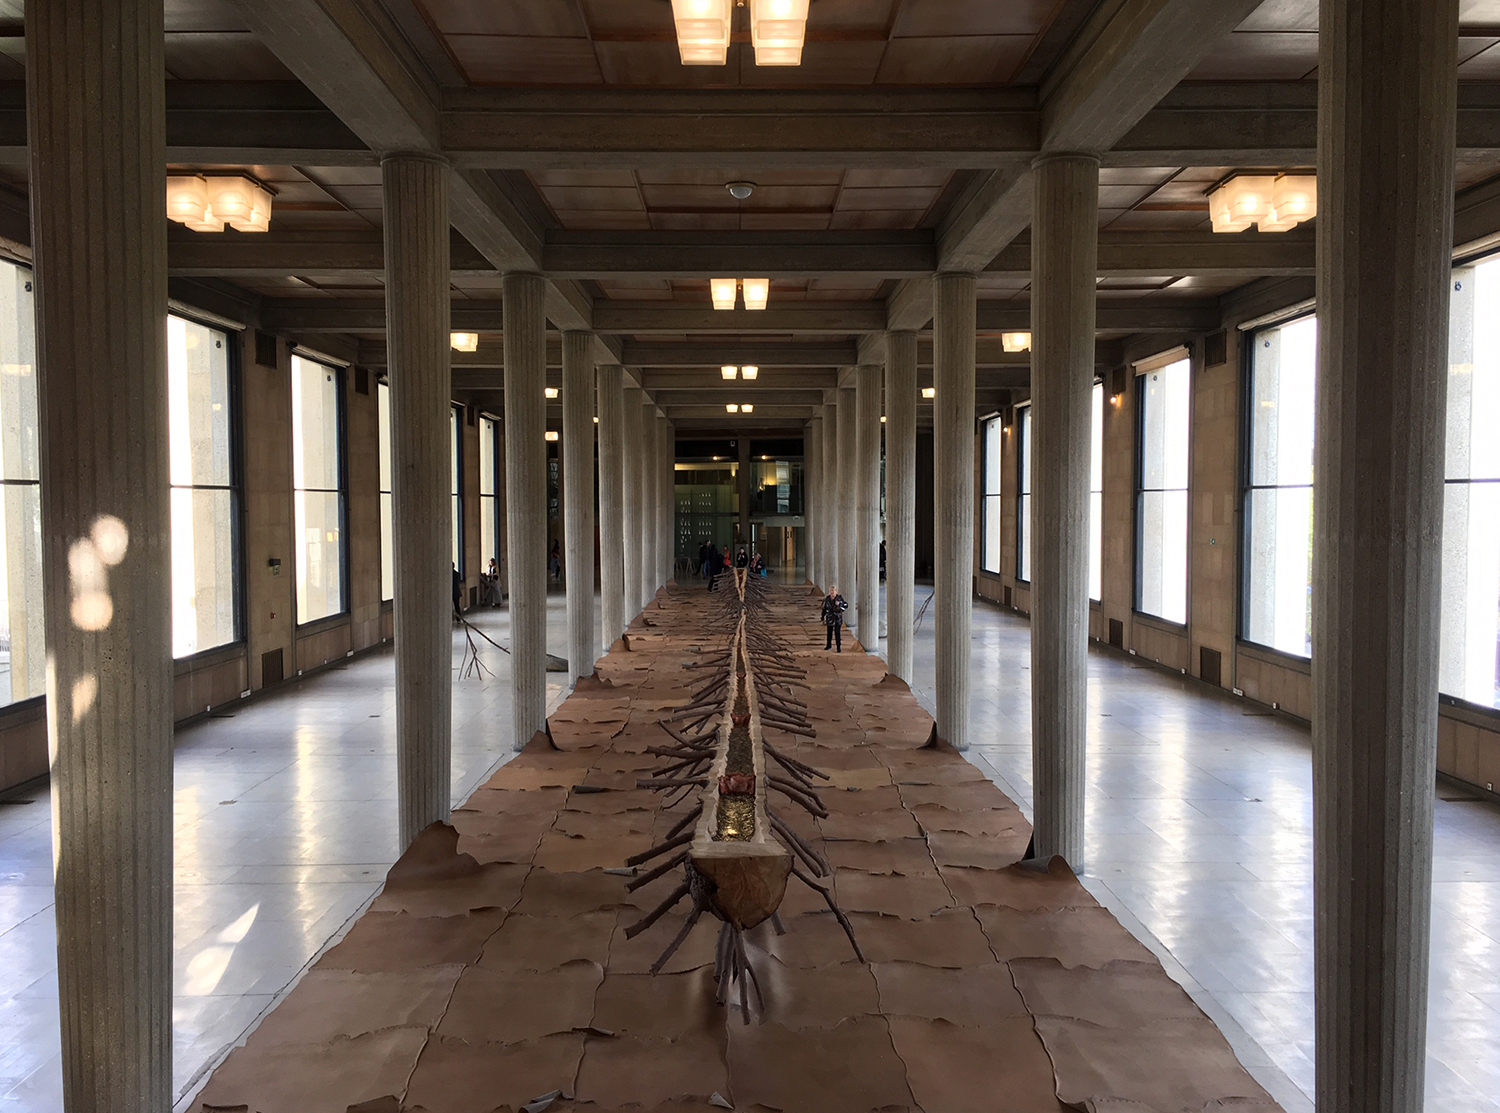 A room with columns, leather on the floor, and an art installation. There are people in the space.